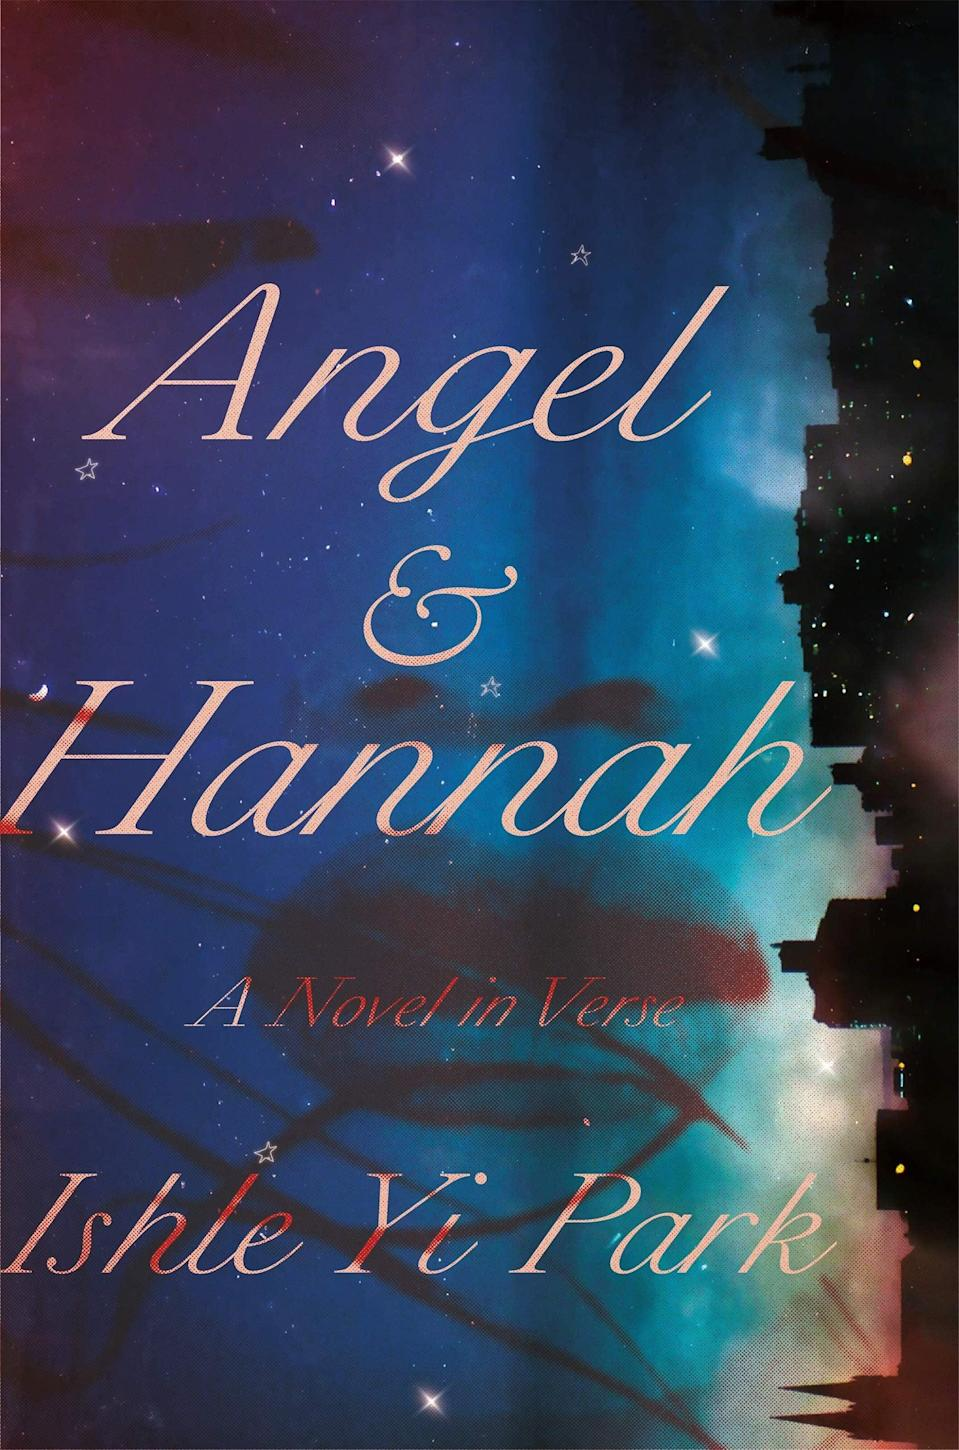 <p><span><strong>Angel &amp; Hannah</strong></span> by Ishle Yi Park is a stirring novel told in verse about an interracial couple in '90s New York City. In the spring of 1993, Hannah, a Korean American girl from Queens, and Angel, a Puerto Rican boy from Brooklyn, fall madly in love. And even though their two families don't understand their relationship, the duo will stop at nothing to protect their burgeoning relationship.</p> <p><em>Out May 11</em></p>